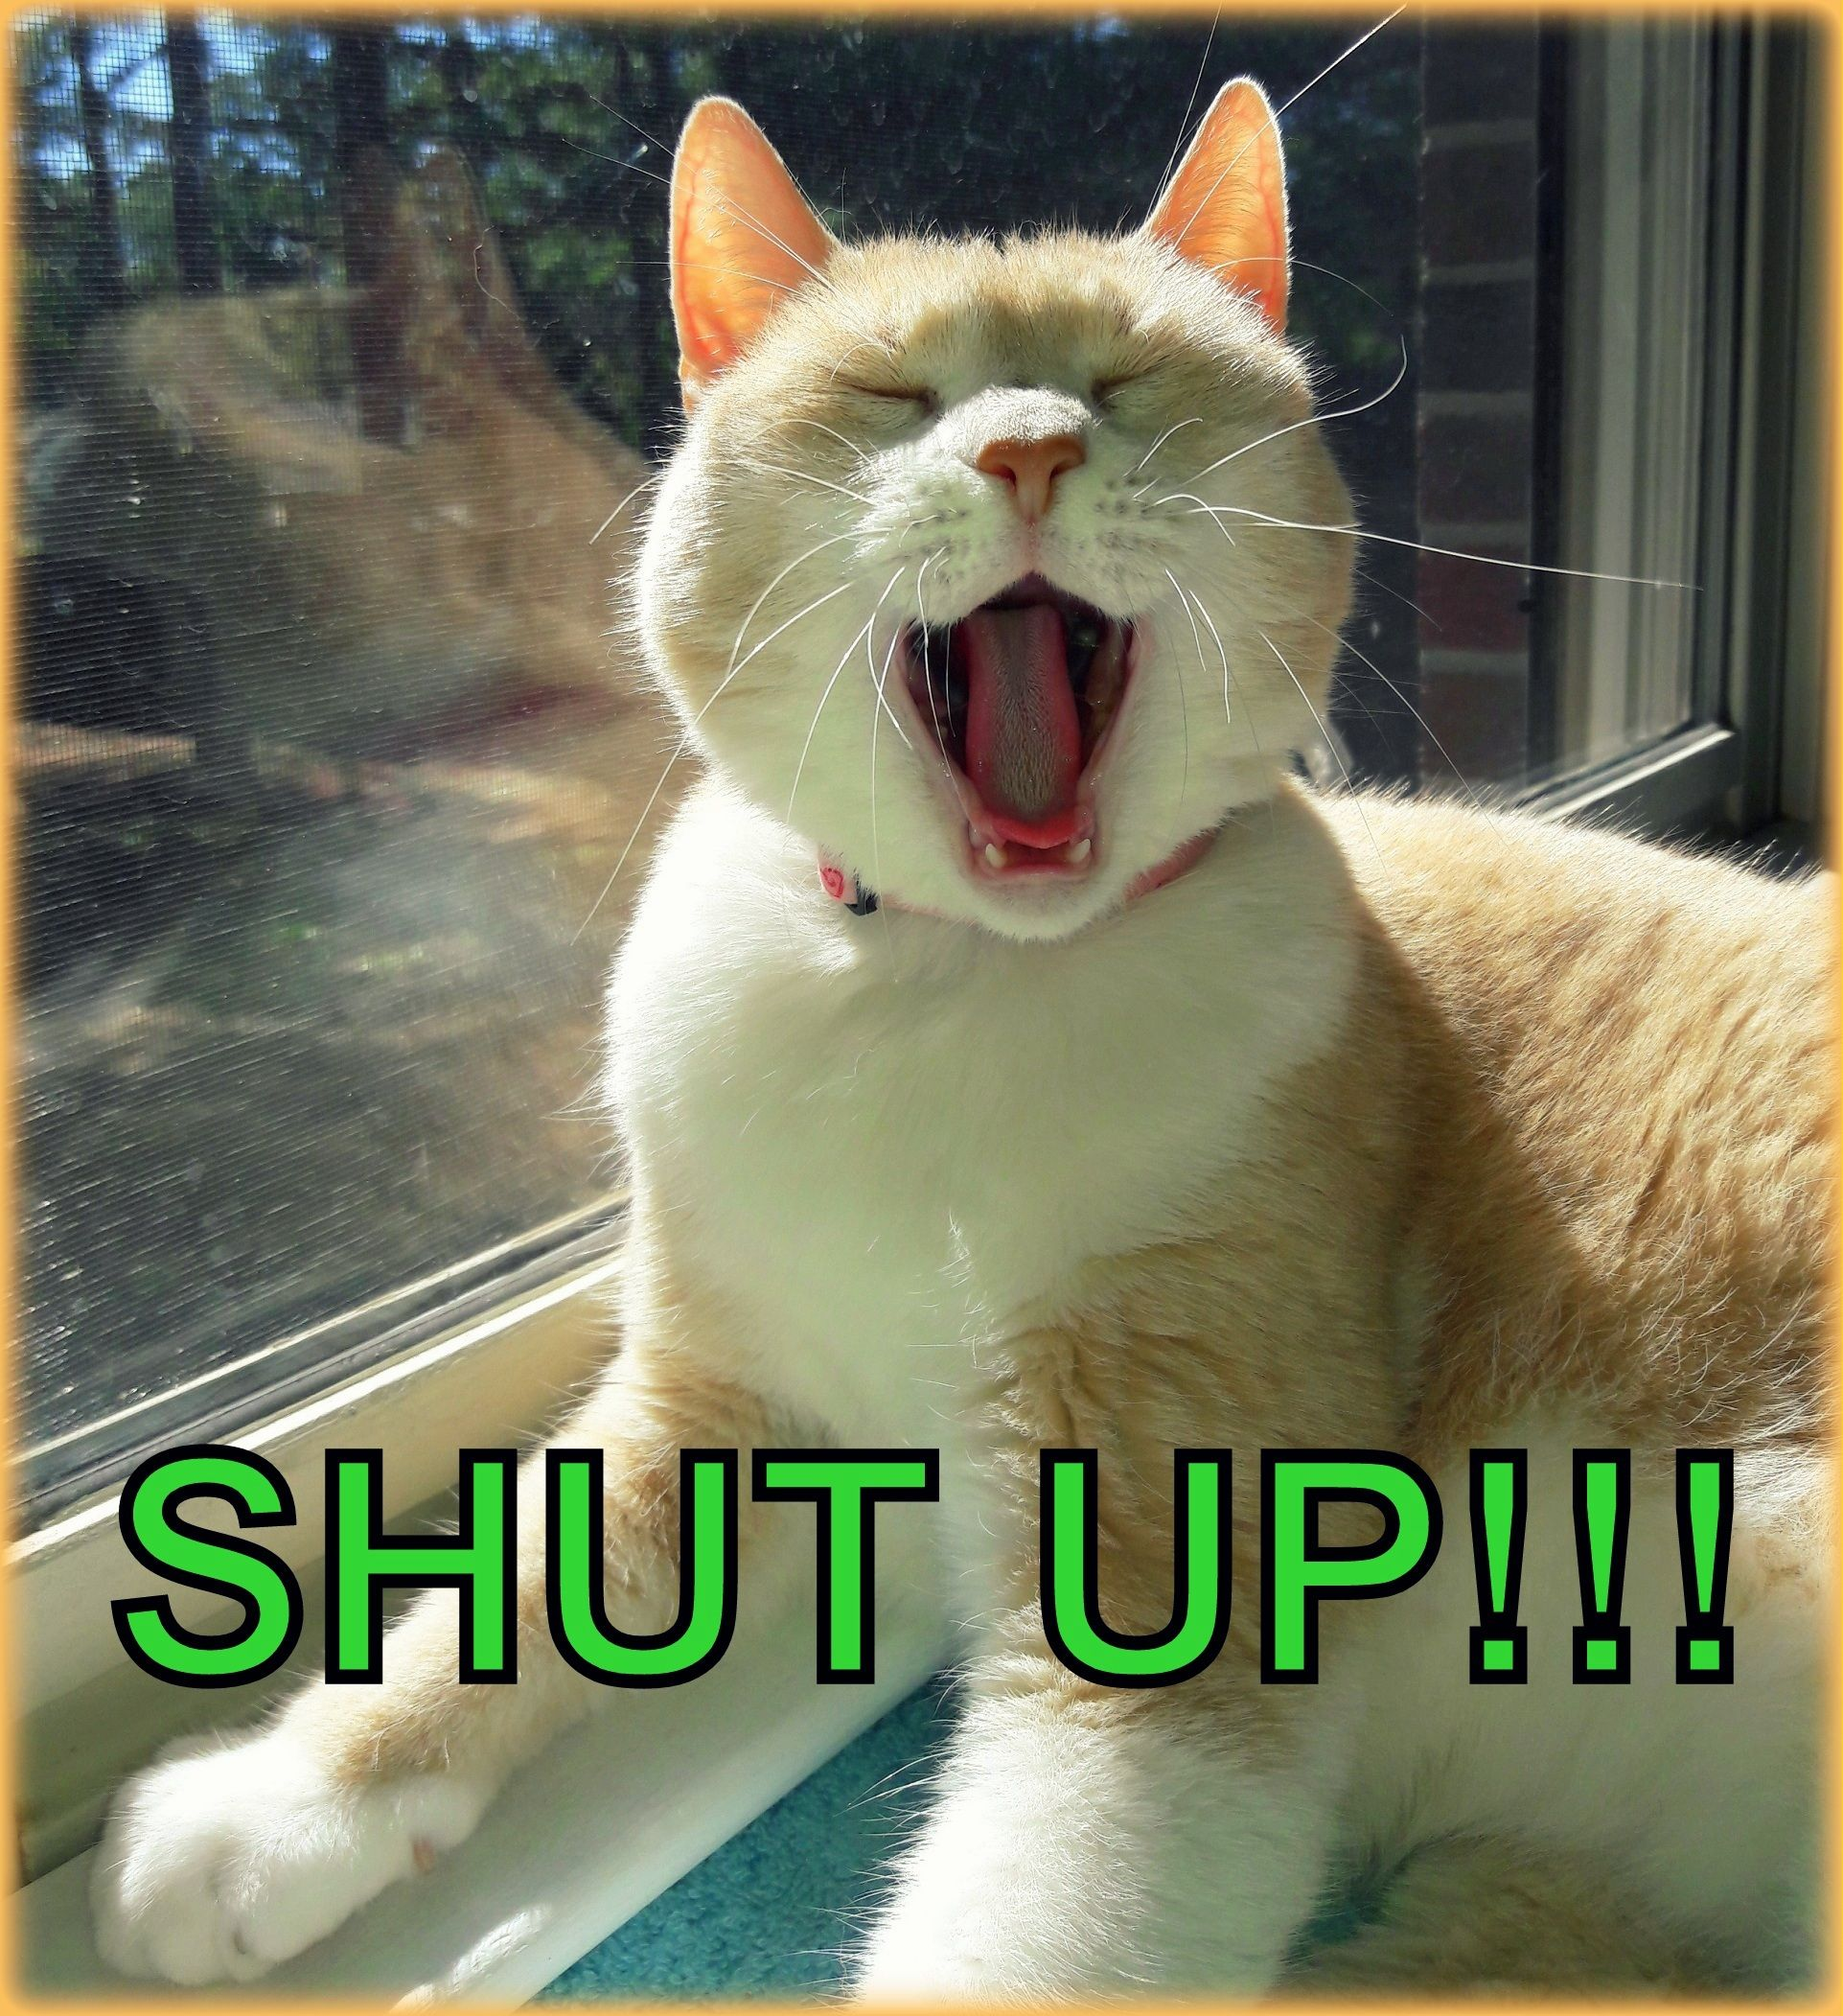 Cat Shut Up Photograph Of My Furkid Kira Belle Yawning Looking Silly Made Into Funny Meme Cat Tabby Kitty Lol Yawn Funny Animals Cats Cat Mom